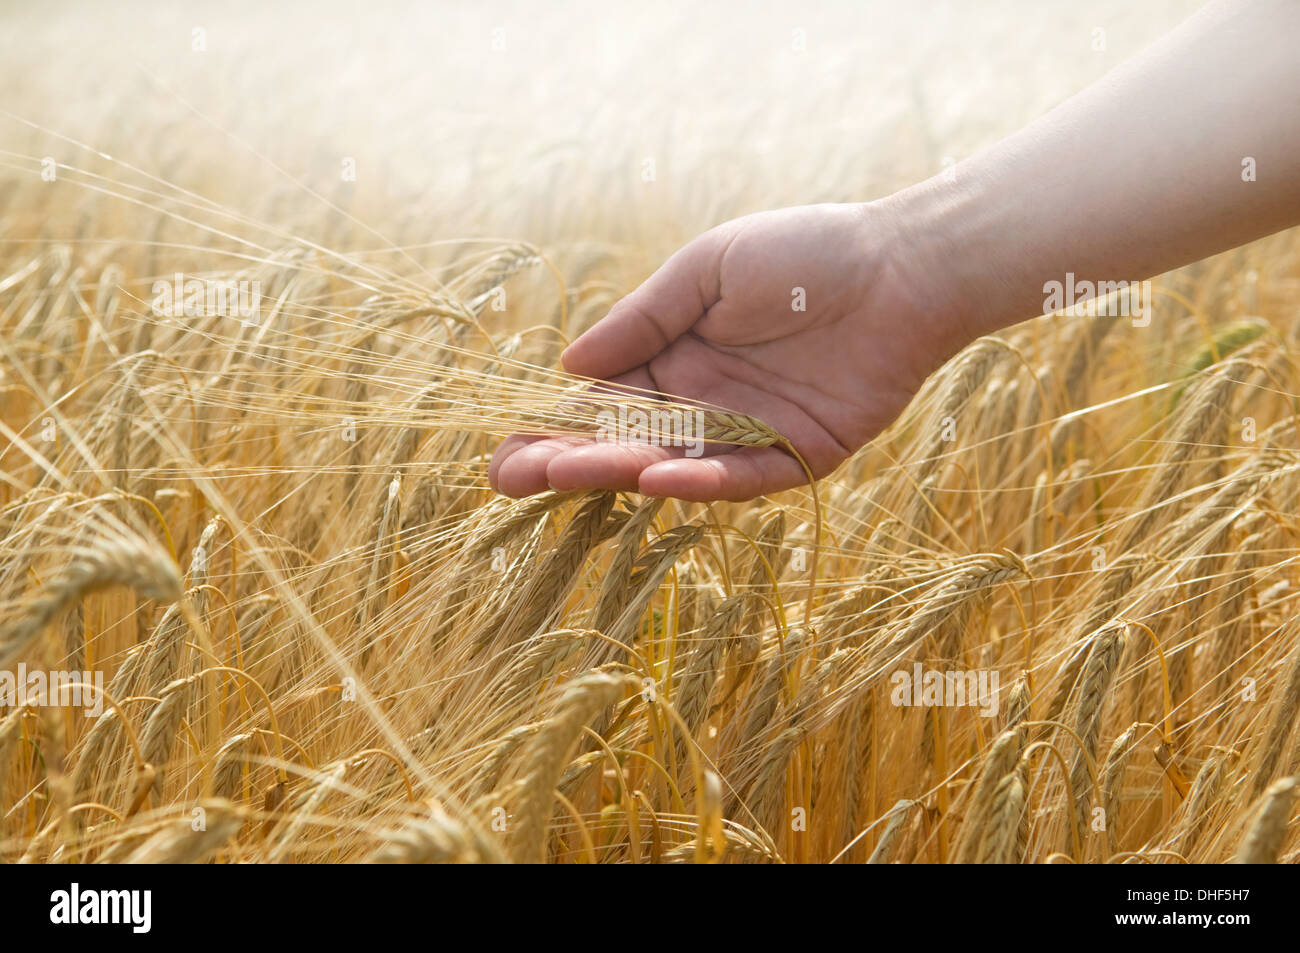 Hand touching wheat - Stock Image